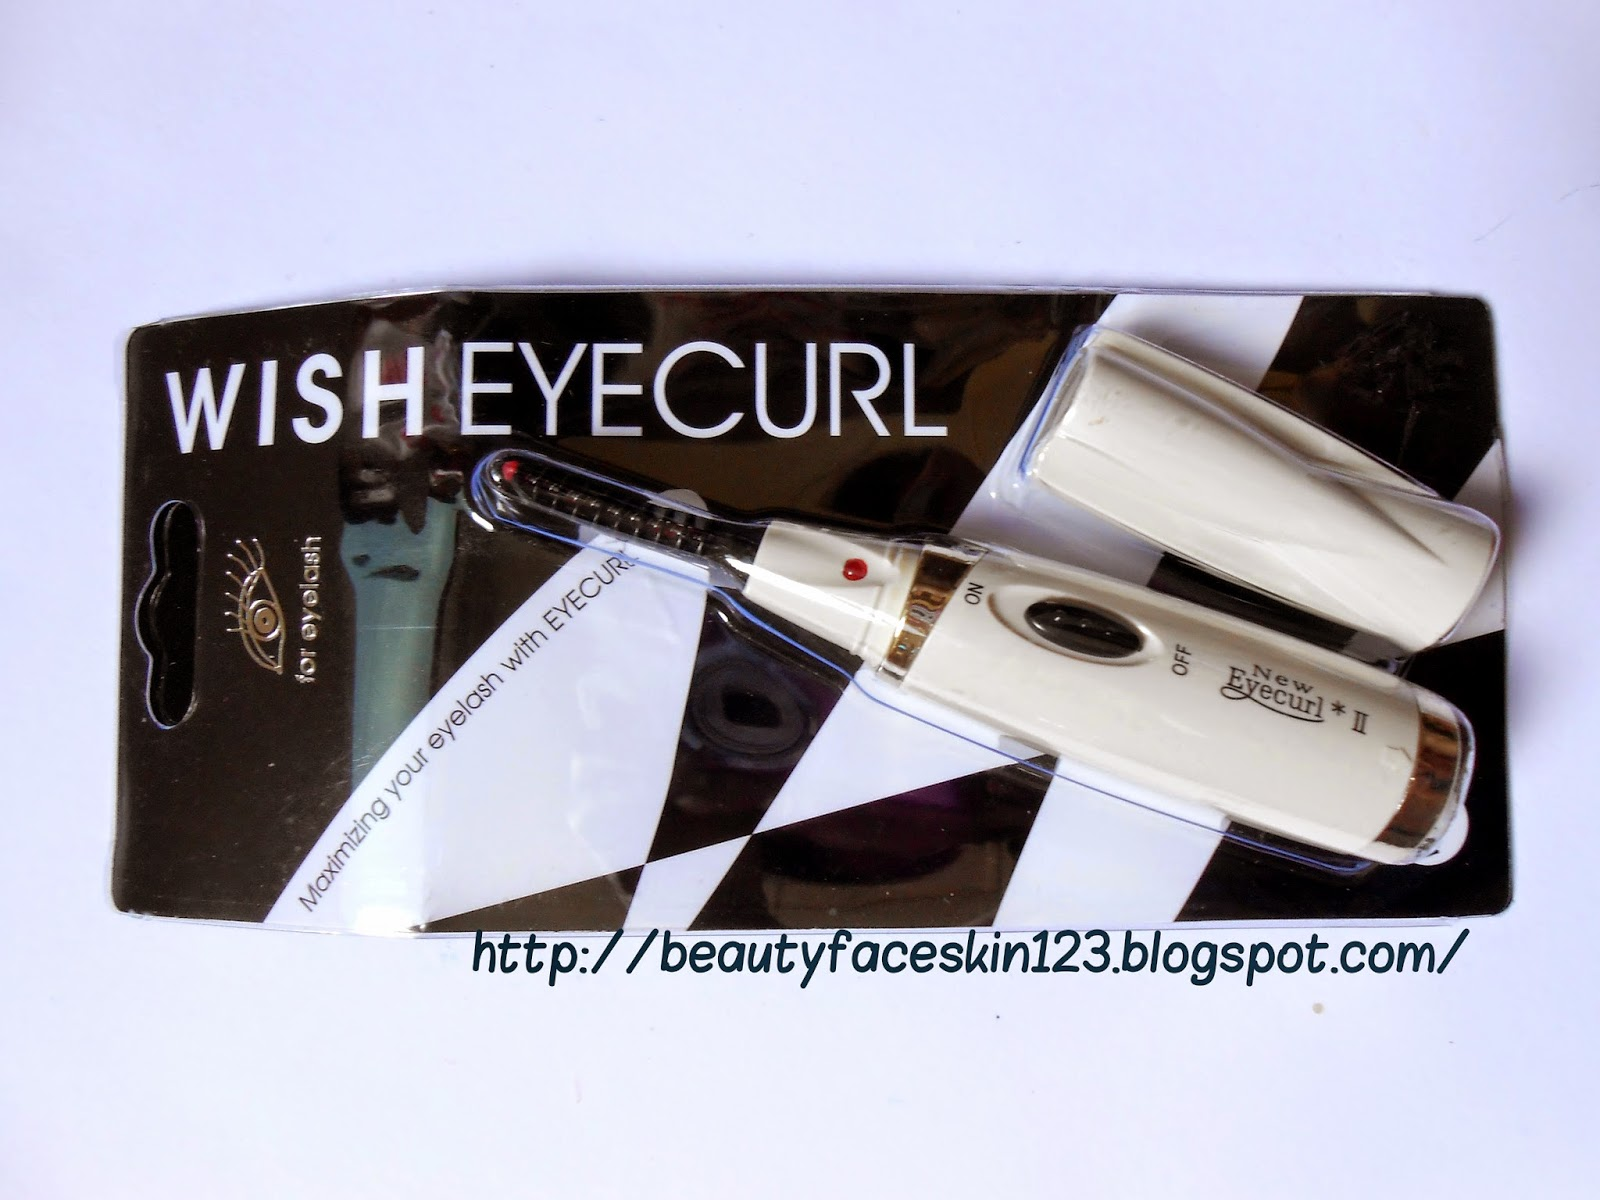 WISH EYECURL- EYELASH CURLING IRON (HEATED EYE LASH CURLER)